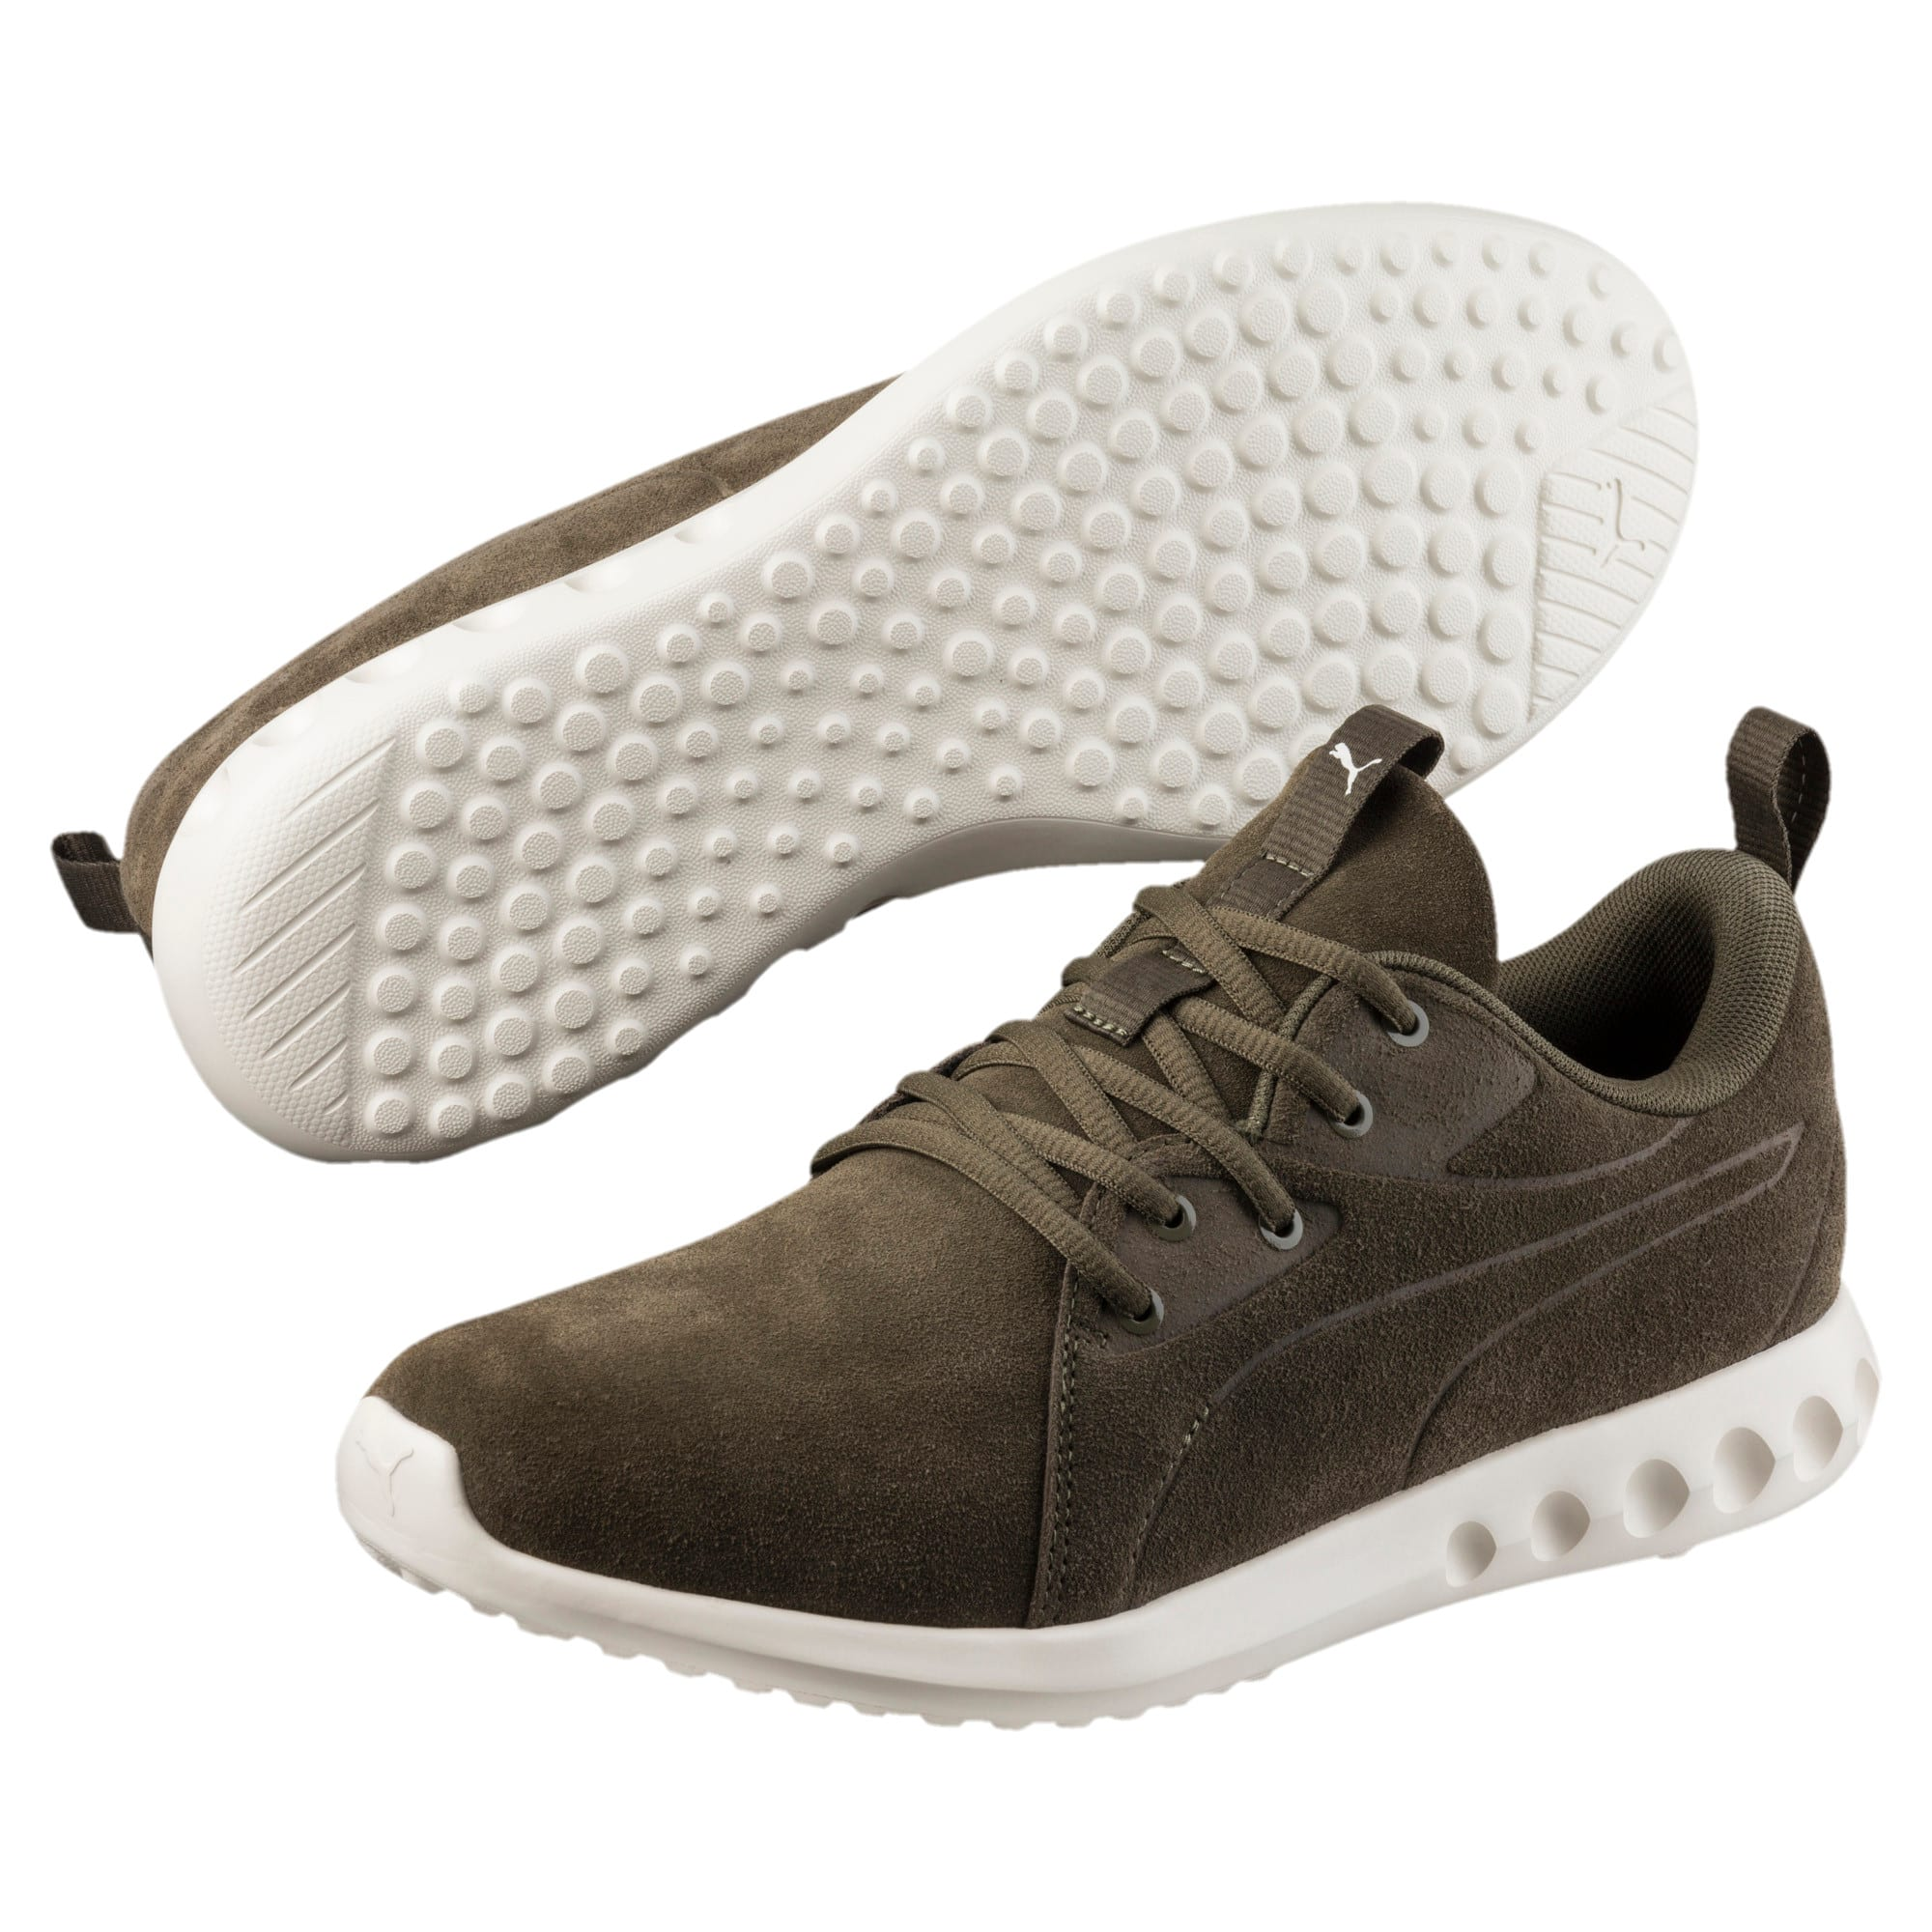 Thumbnail 2 of Carson 2 Moulded Suede Trainers, Olive Night-Whisper White, medium-IND